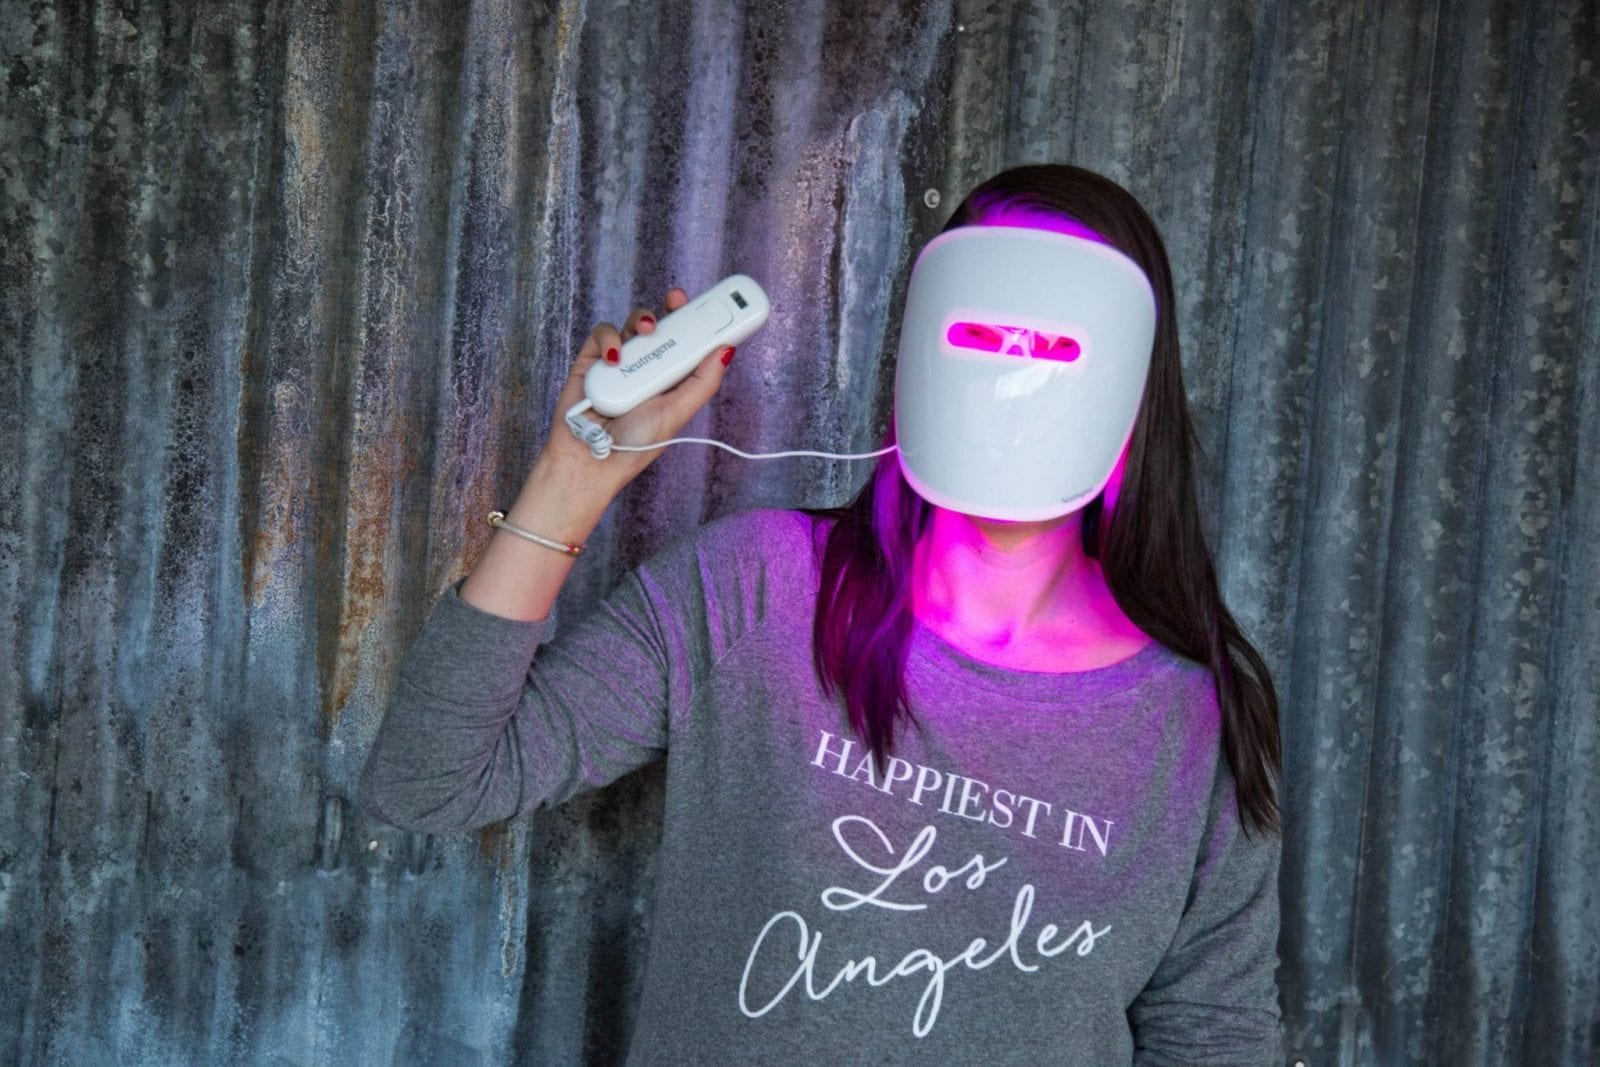 In this photo, I am wearing the Neutrogena Light Therapy Mask with the light turned on so my face is illuminated in purple.